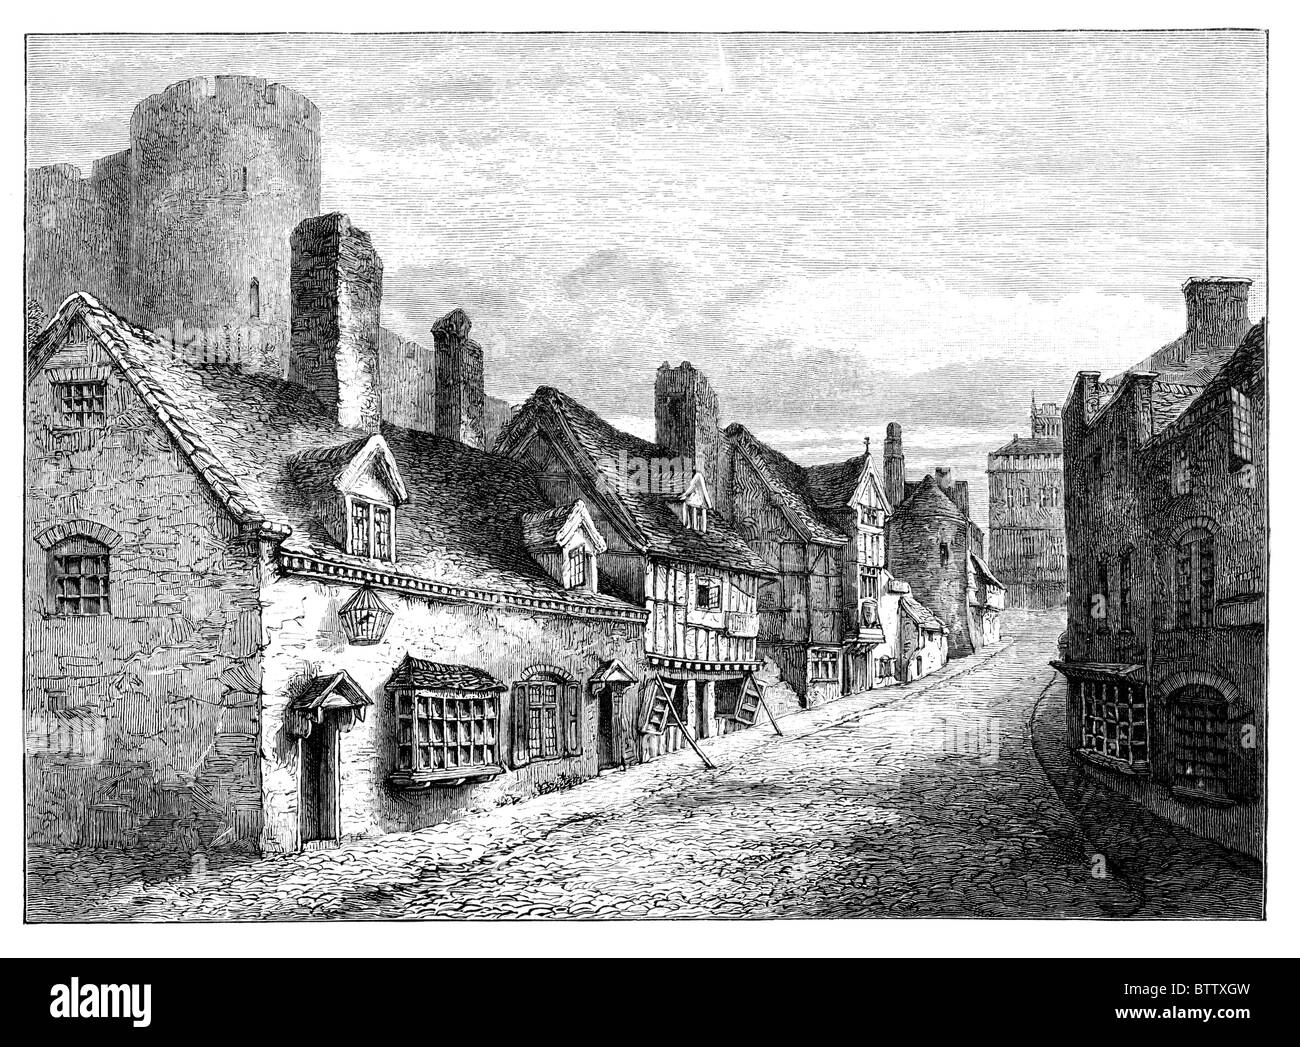 Castle Gate, Shrewsbury, Shropshire as it may have appeared in the 19th century. Black and White Illustration; - Stock Image